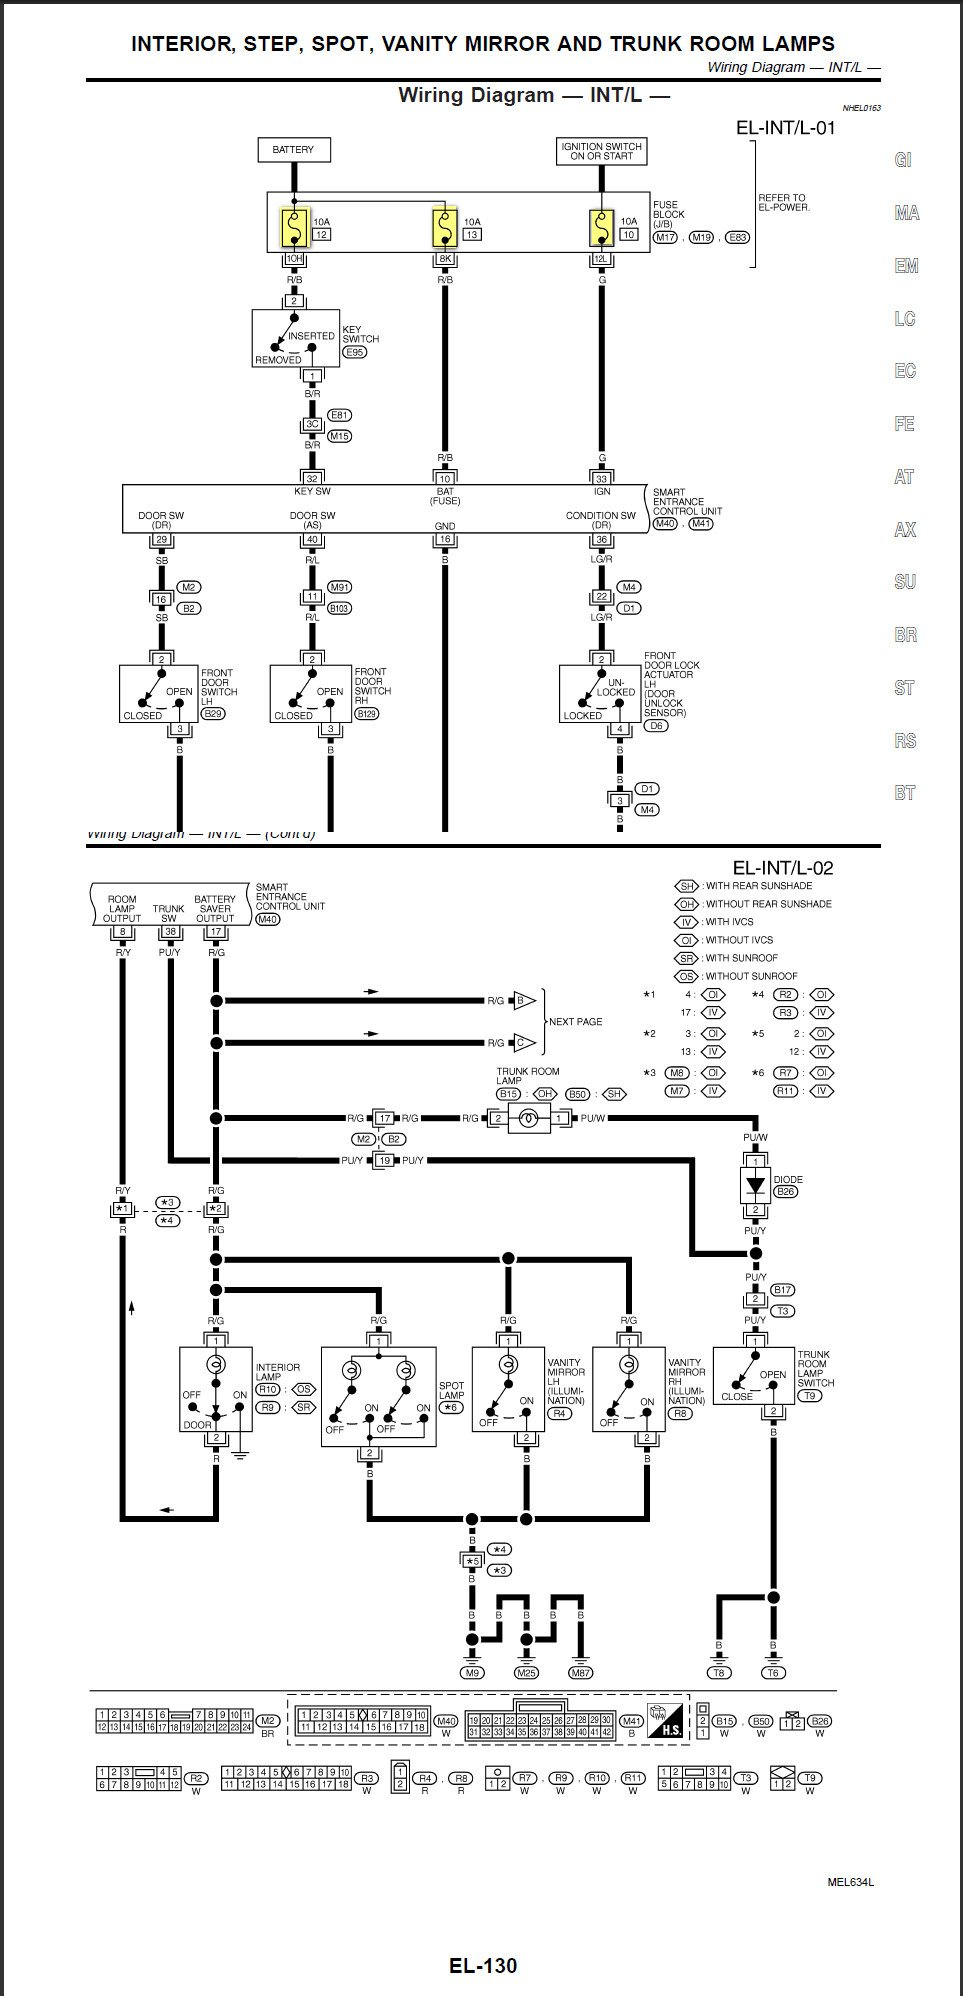 i have an infiniti i30 2001  a neighbor offered to replace